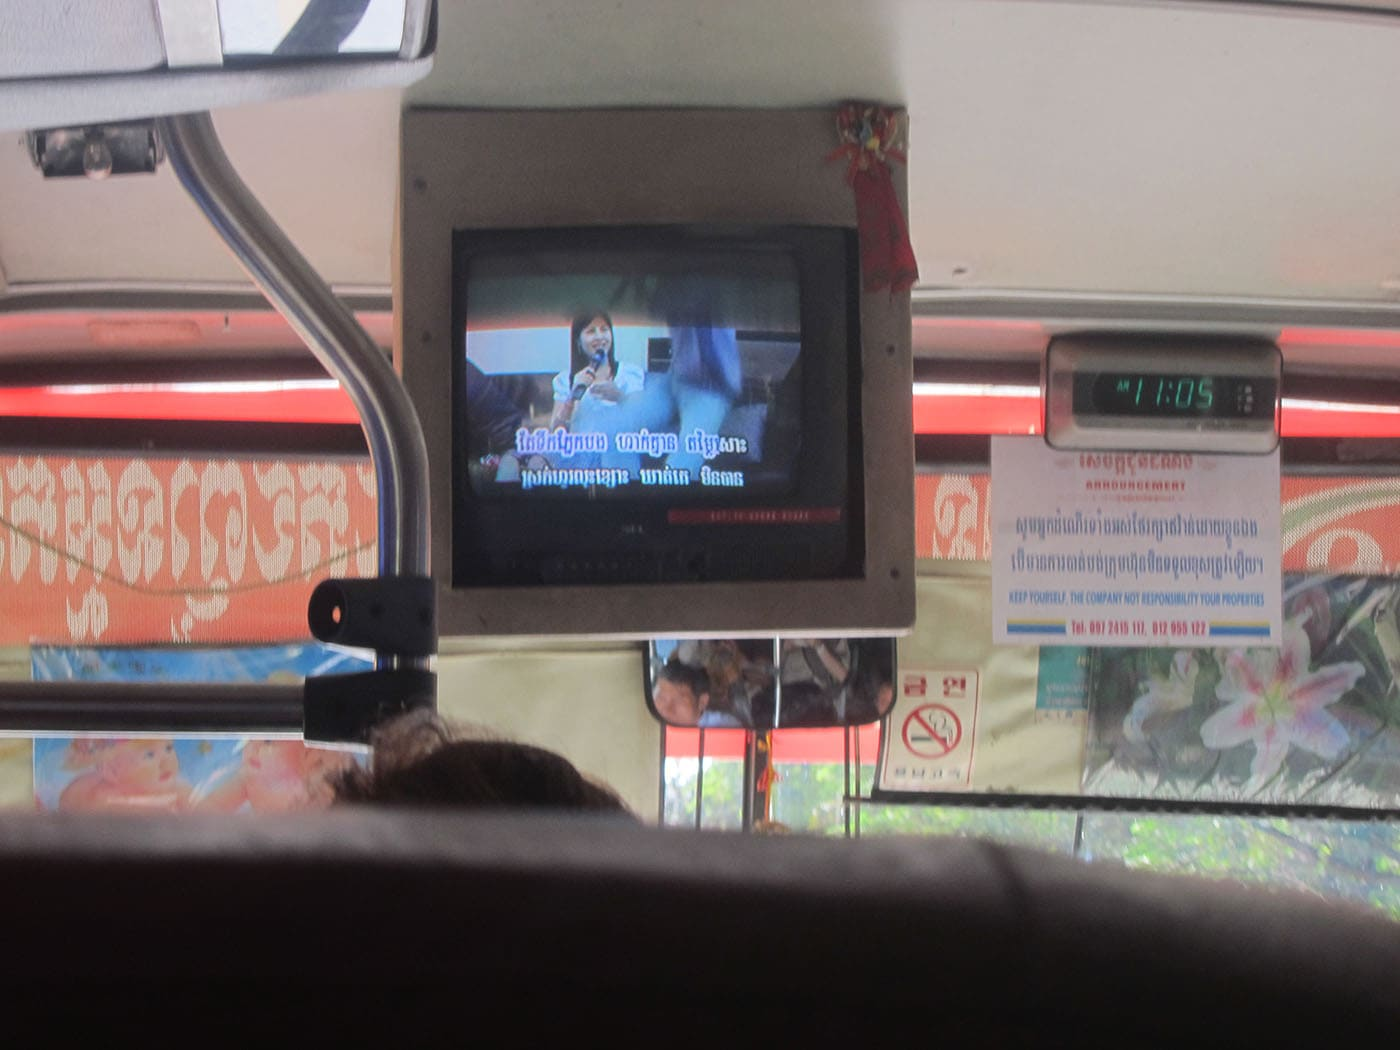 karoke on Cambodian buses